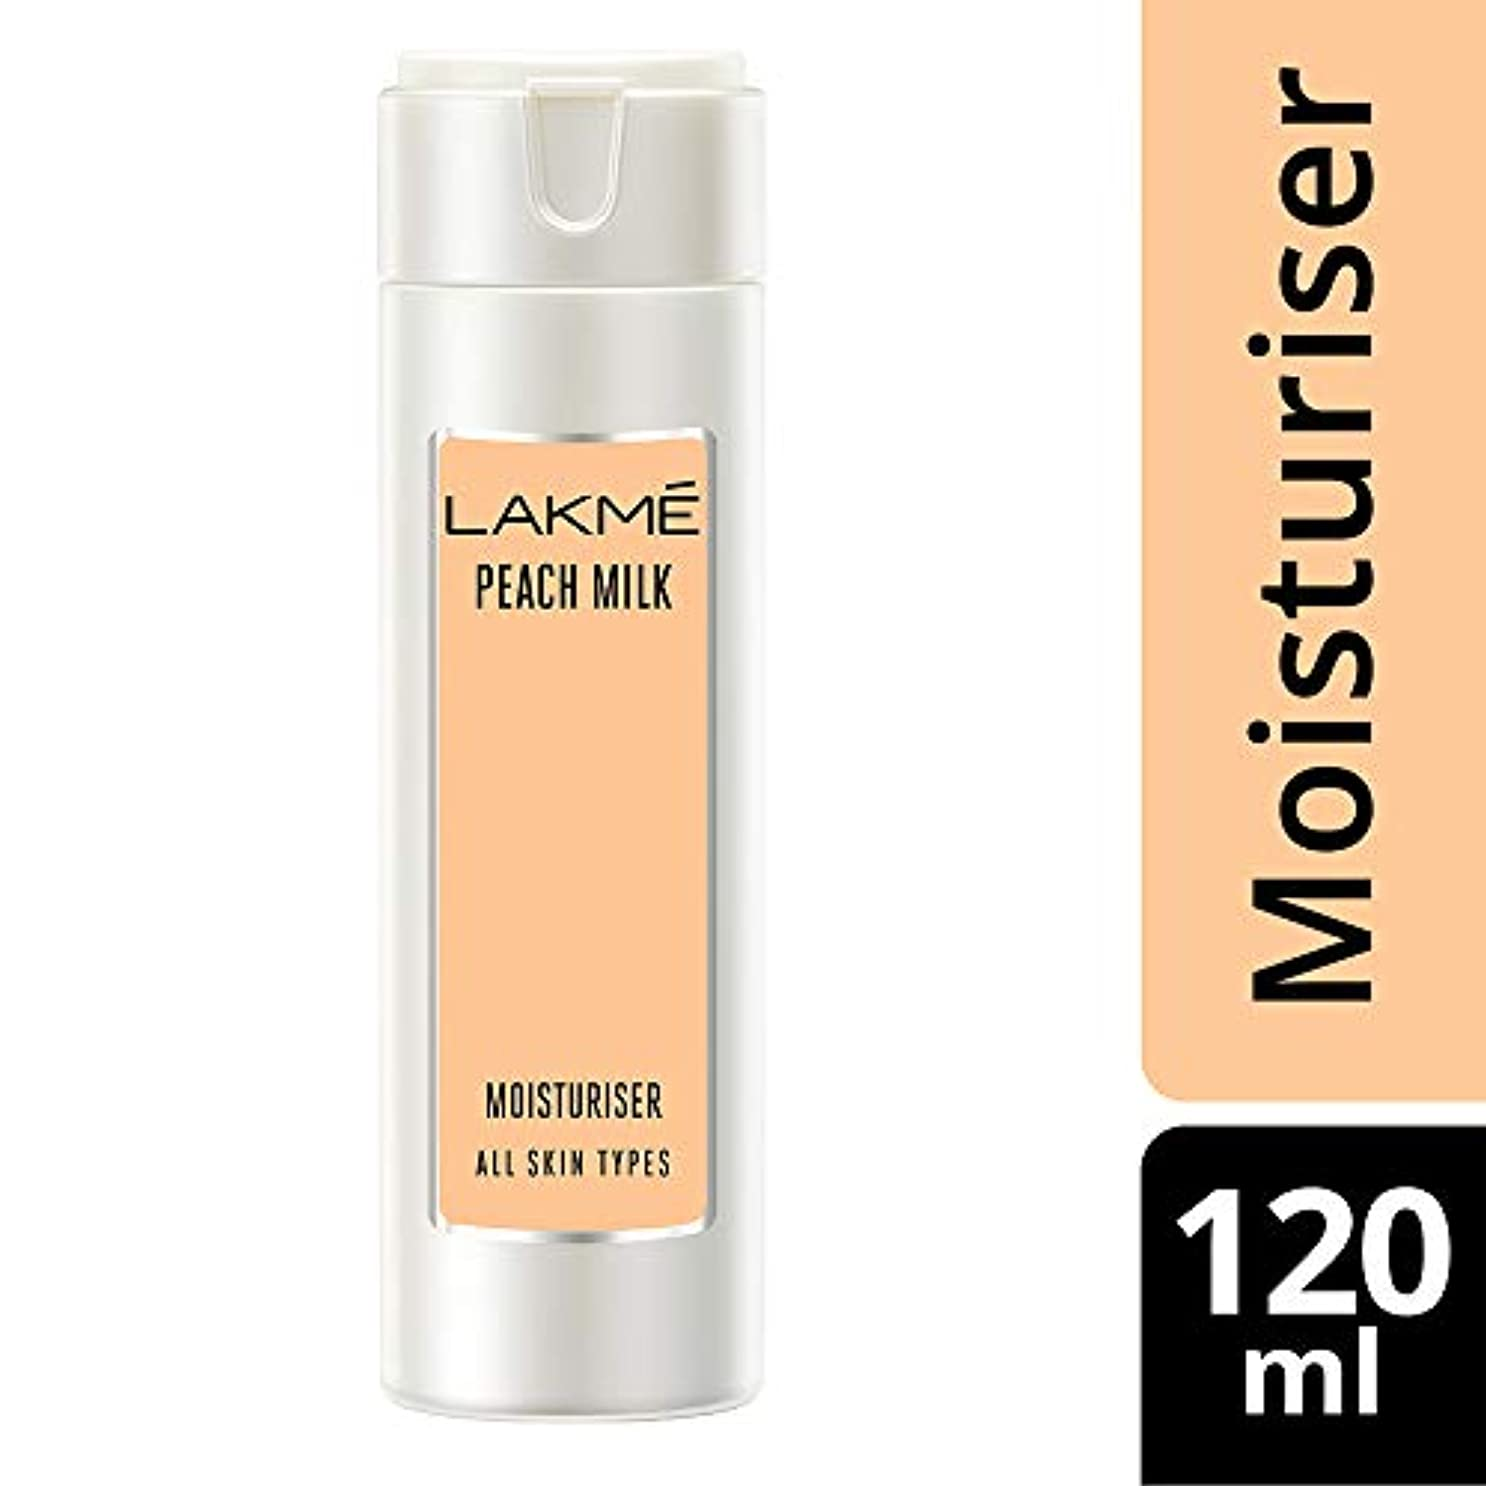 アミューズメントおもちゃケイ素Lakme Peach Milk Moisturizer Body Lotion, 120ml